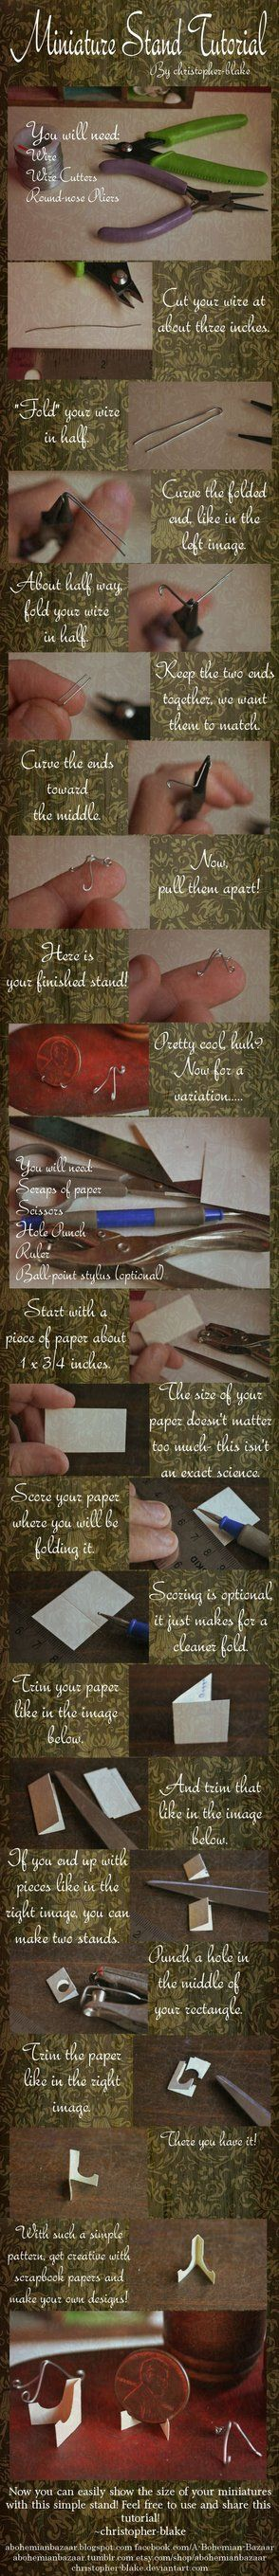 Miniature Stand Tutorial (For Pennies or Plates) by *abohemianbazaar on deviantART